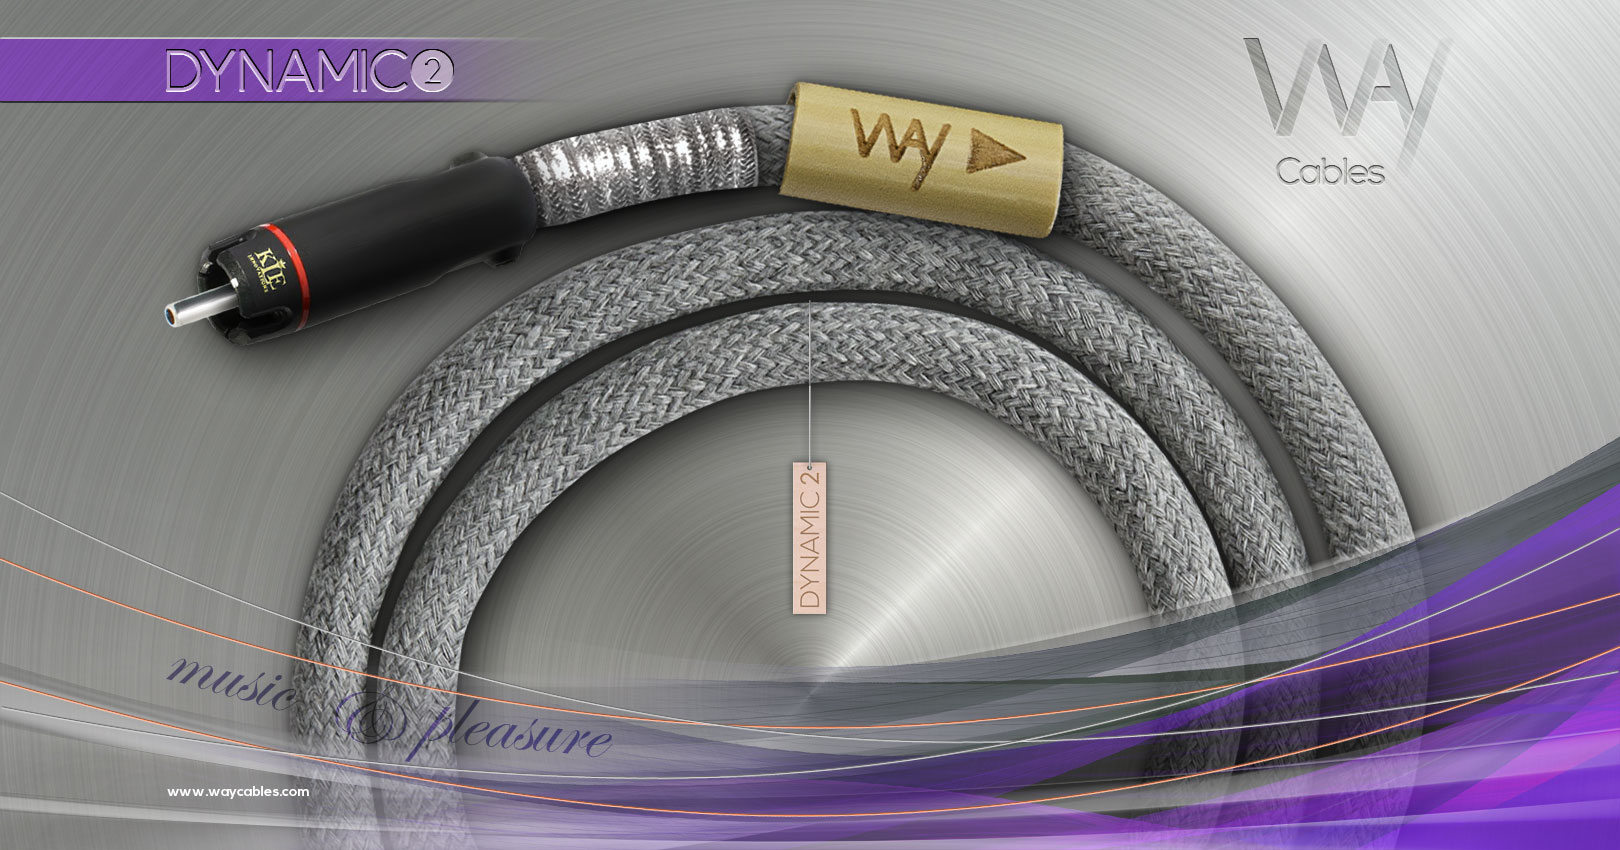 Way Cables DYNAMIC 2 interconnect - Gray cotton - KLEI Copper Harmony RCA plugs